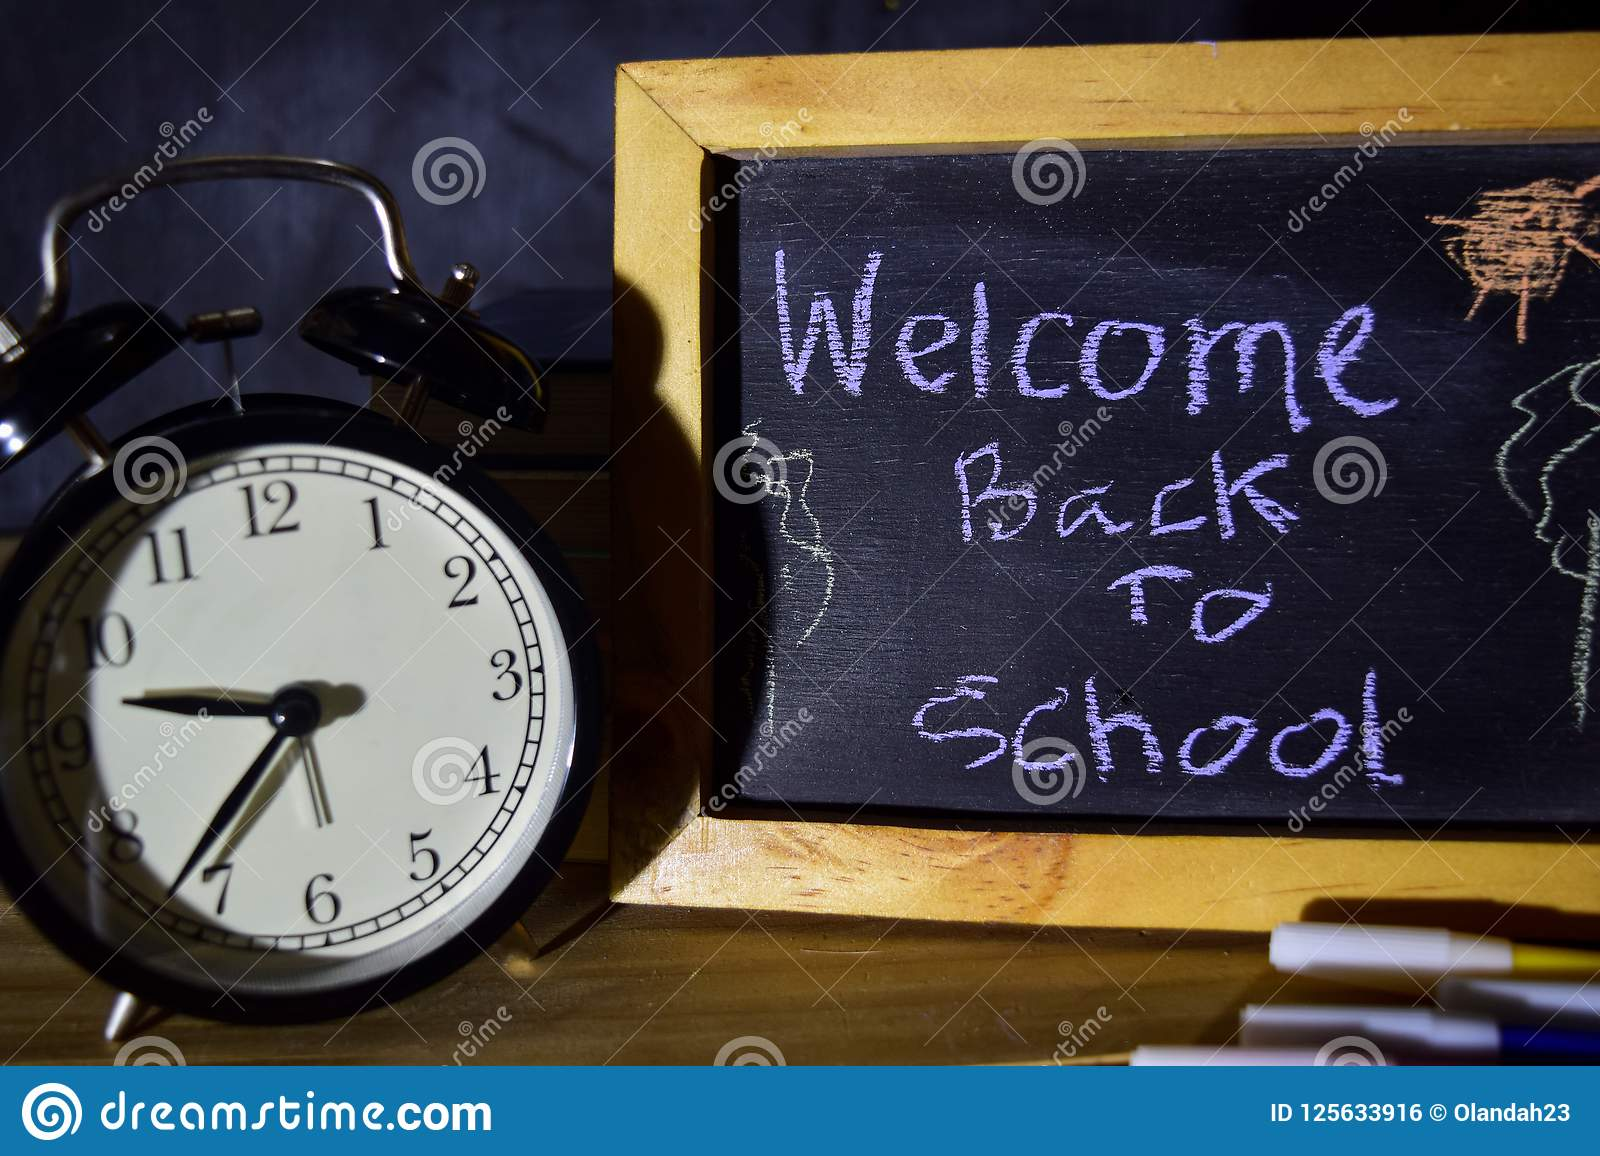 Welcome back to school message concept with quote written on chalkboard.